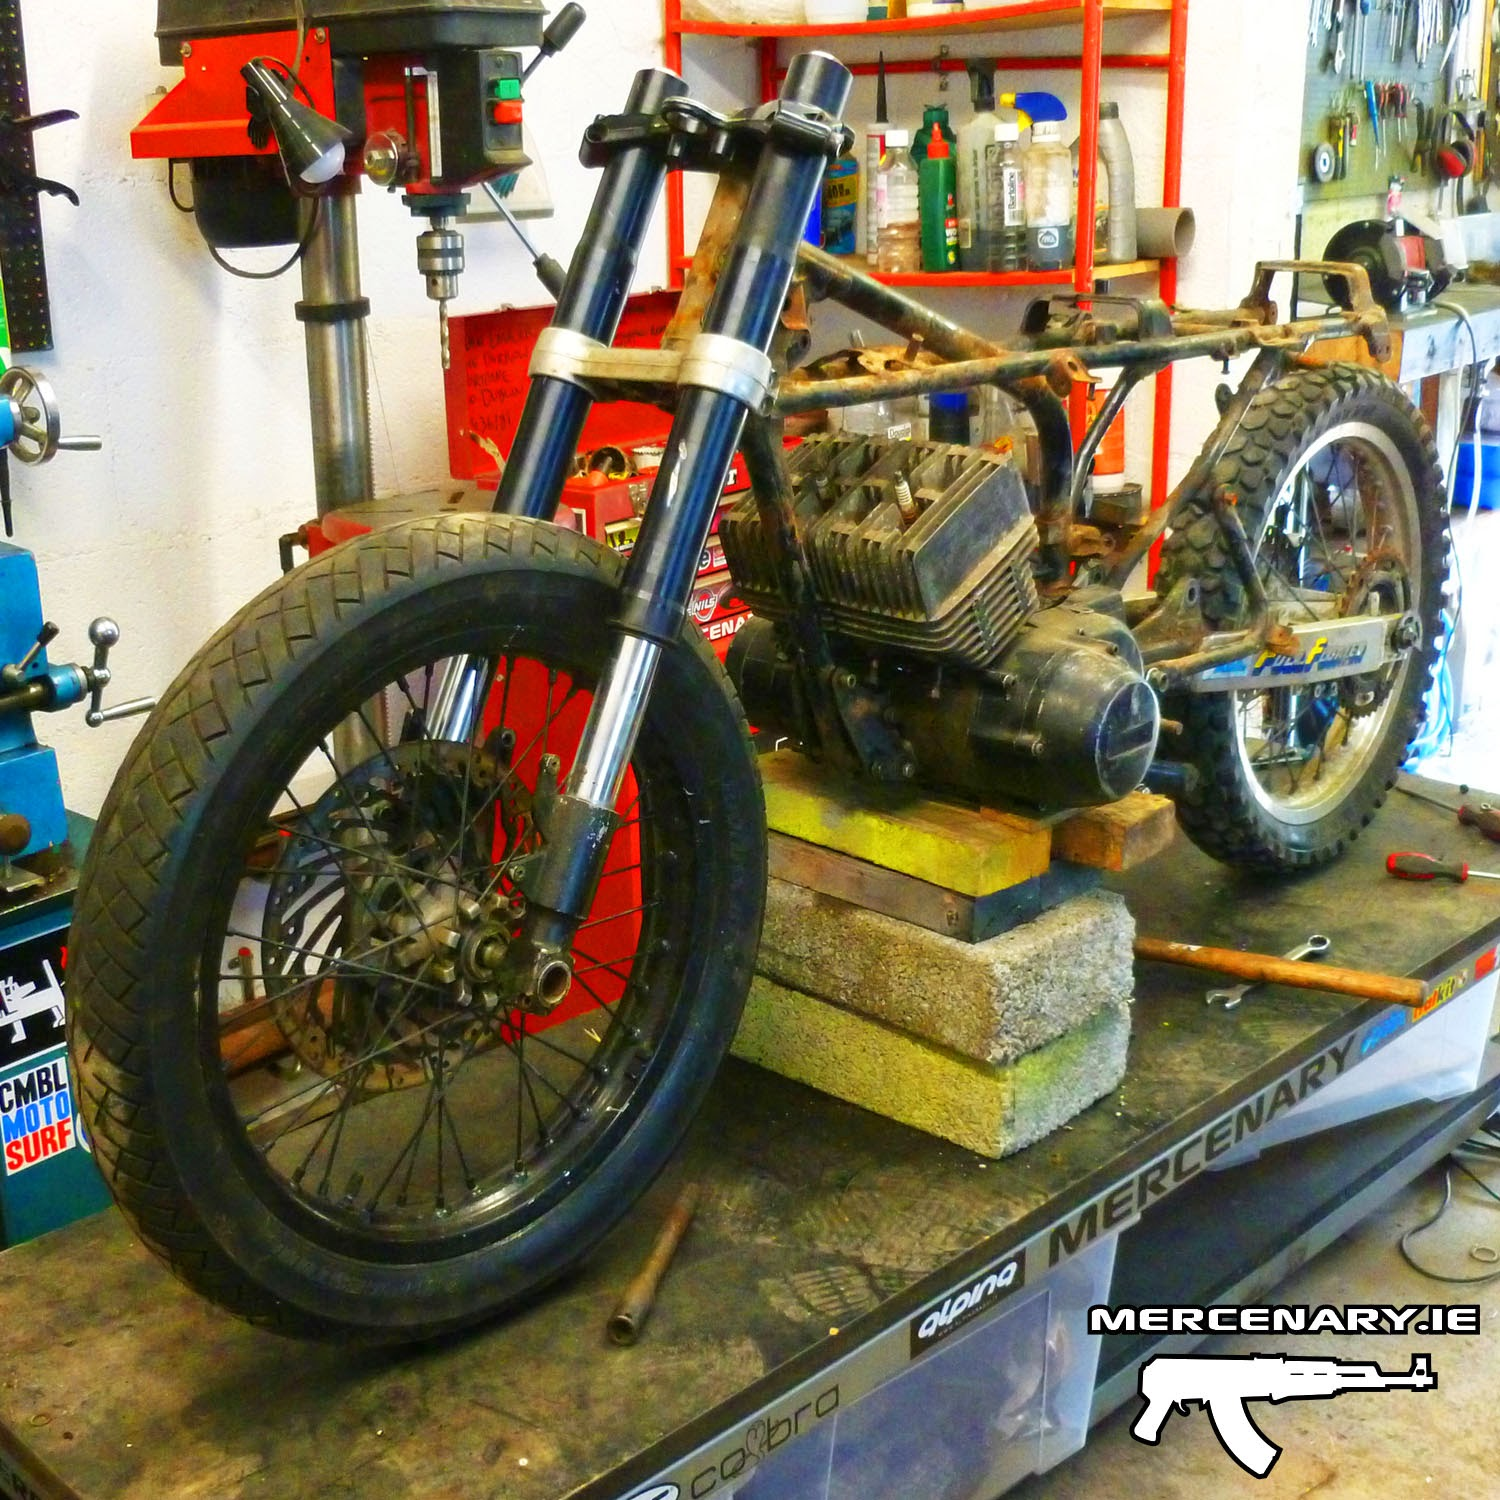 Project Pipebomb RD 200